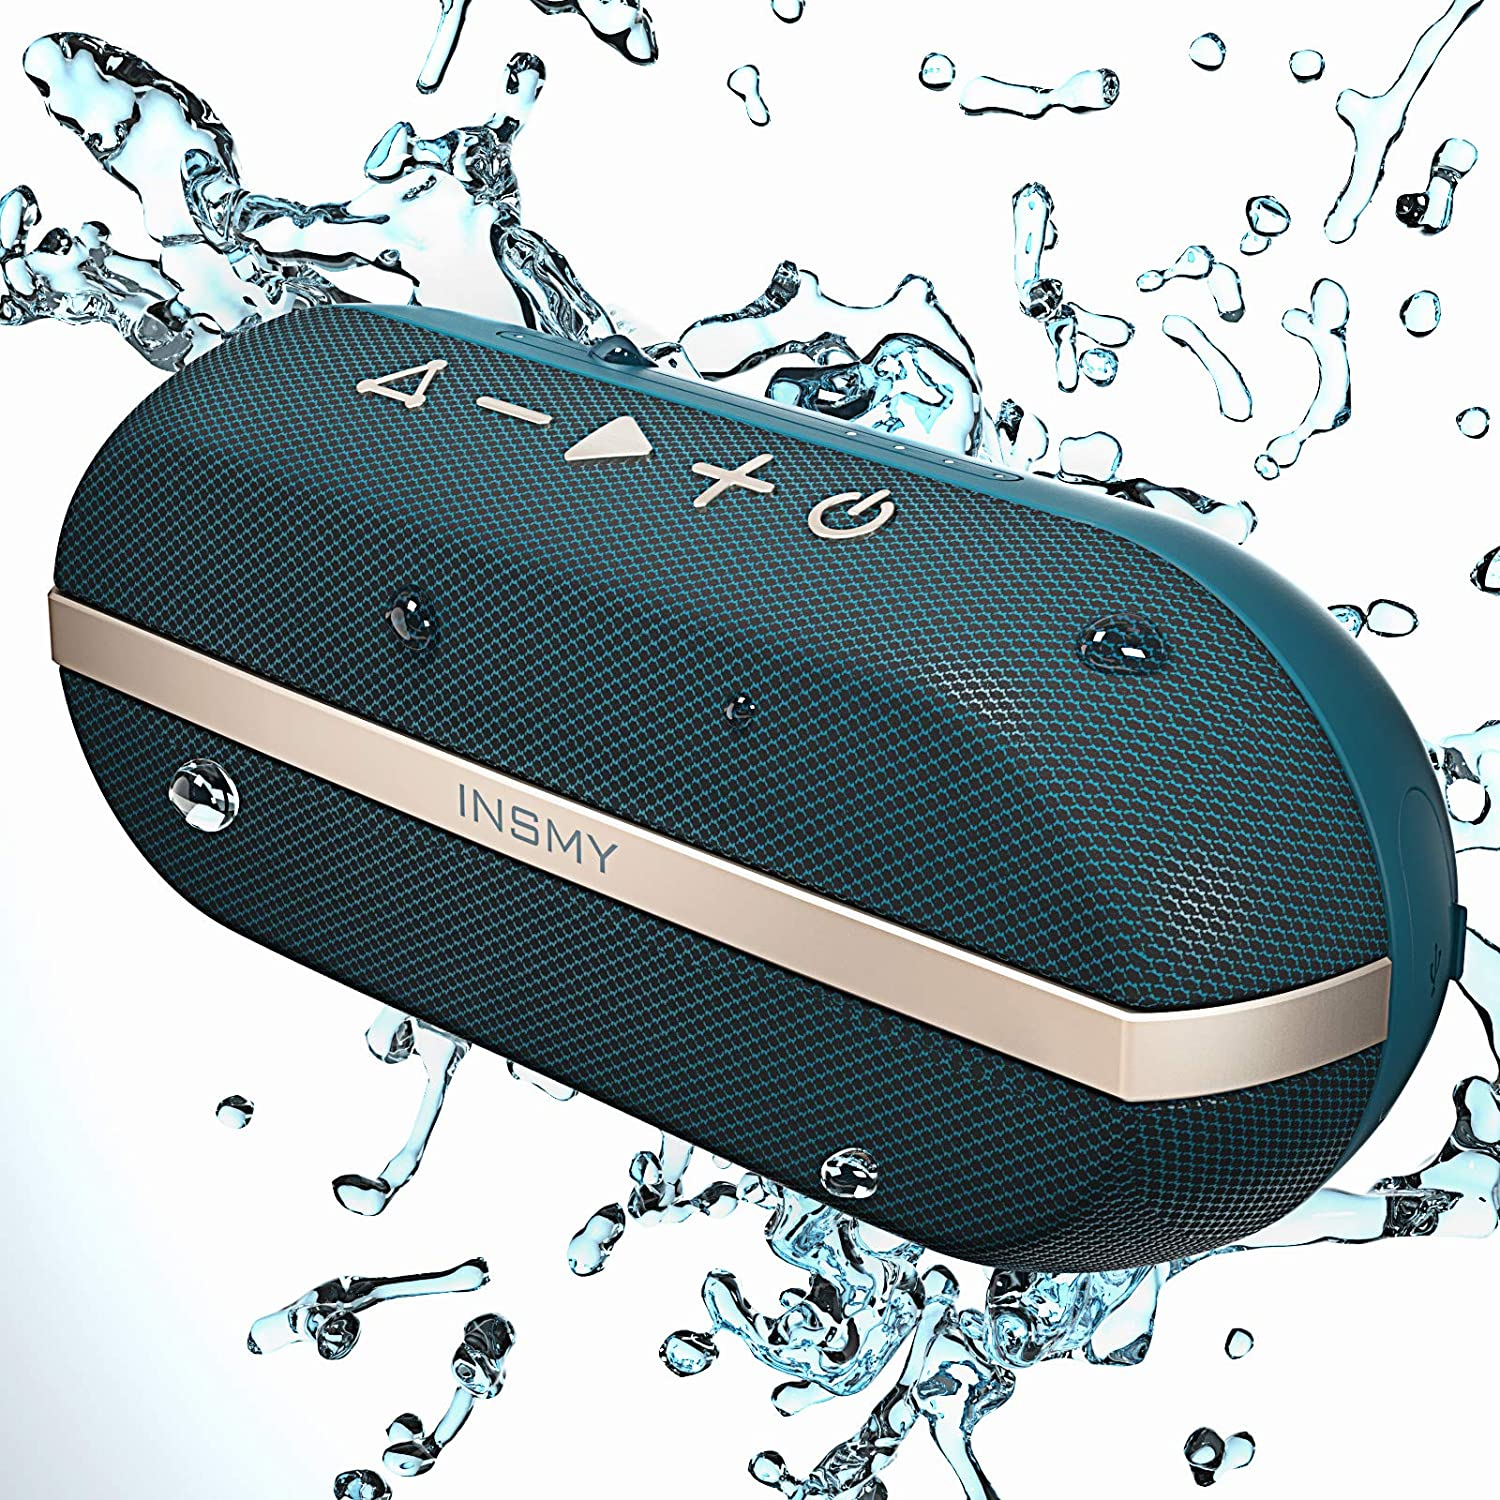 INSMY Portable Bluetooth Speakers, 20W Wireless Speaker Loud Stereo Sound Rich Bass, IPX7 Waterproof Floating, TWS Stereo Pairing, 24 Hours, Bluetooth 5.0, Built-in Mic for Outdoors Camping (Blue)